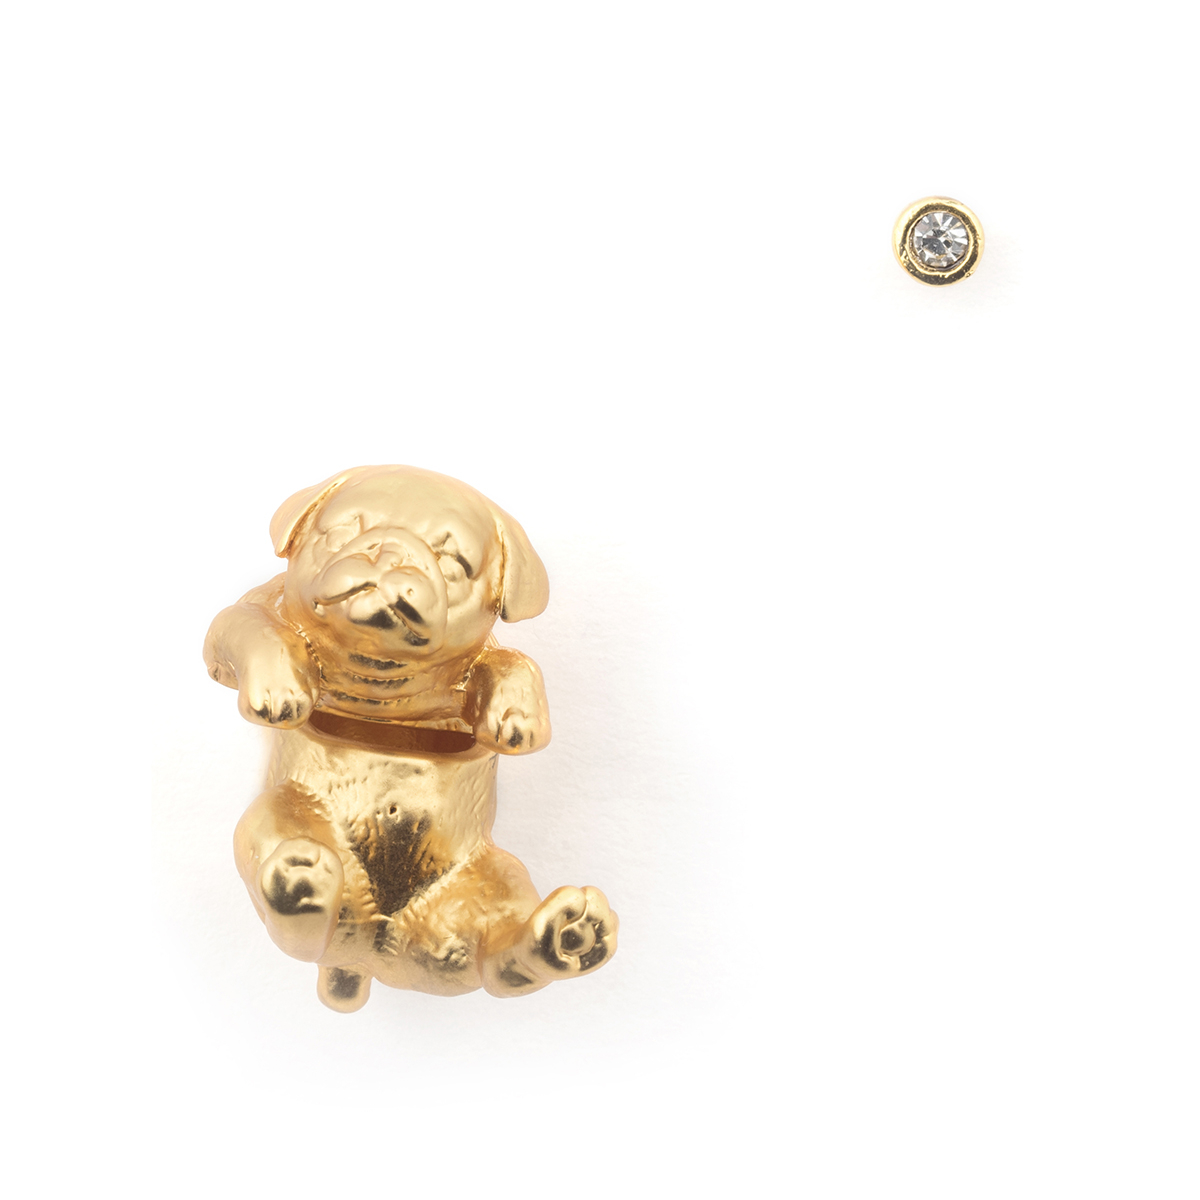 Puppy Pug Through Earring & Crystal Stud - Gold